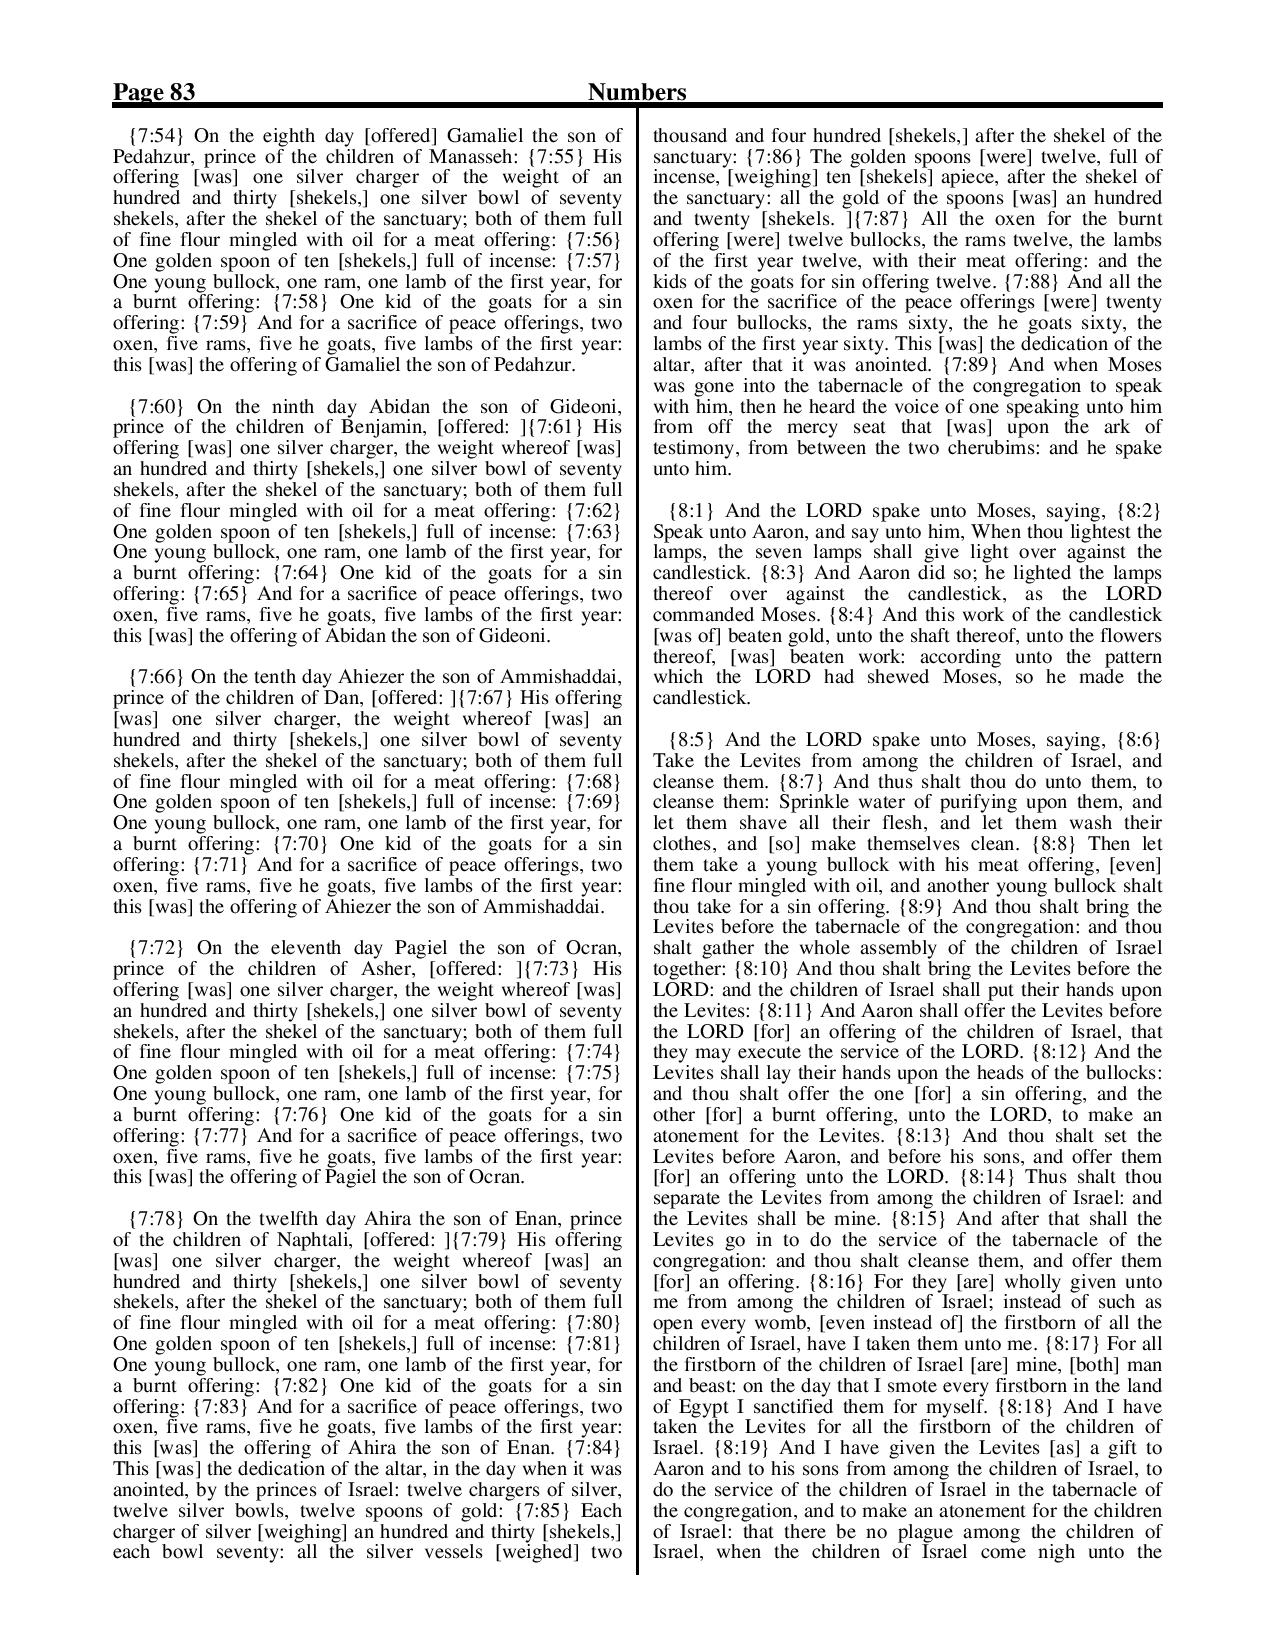 King-James-Bible-KJV-Bible-PDF-page-104